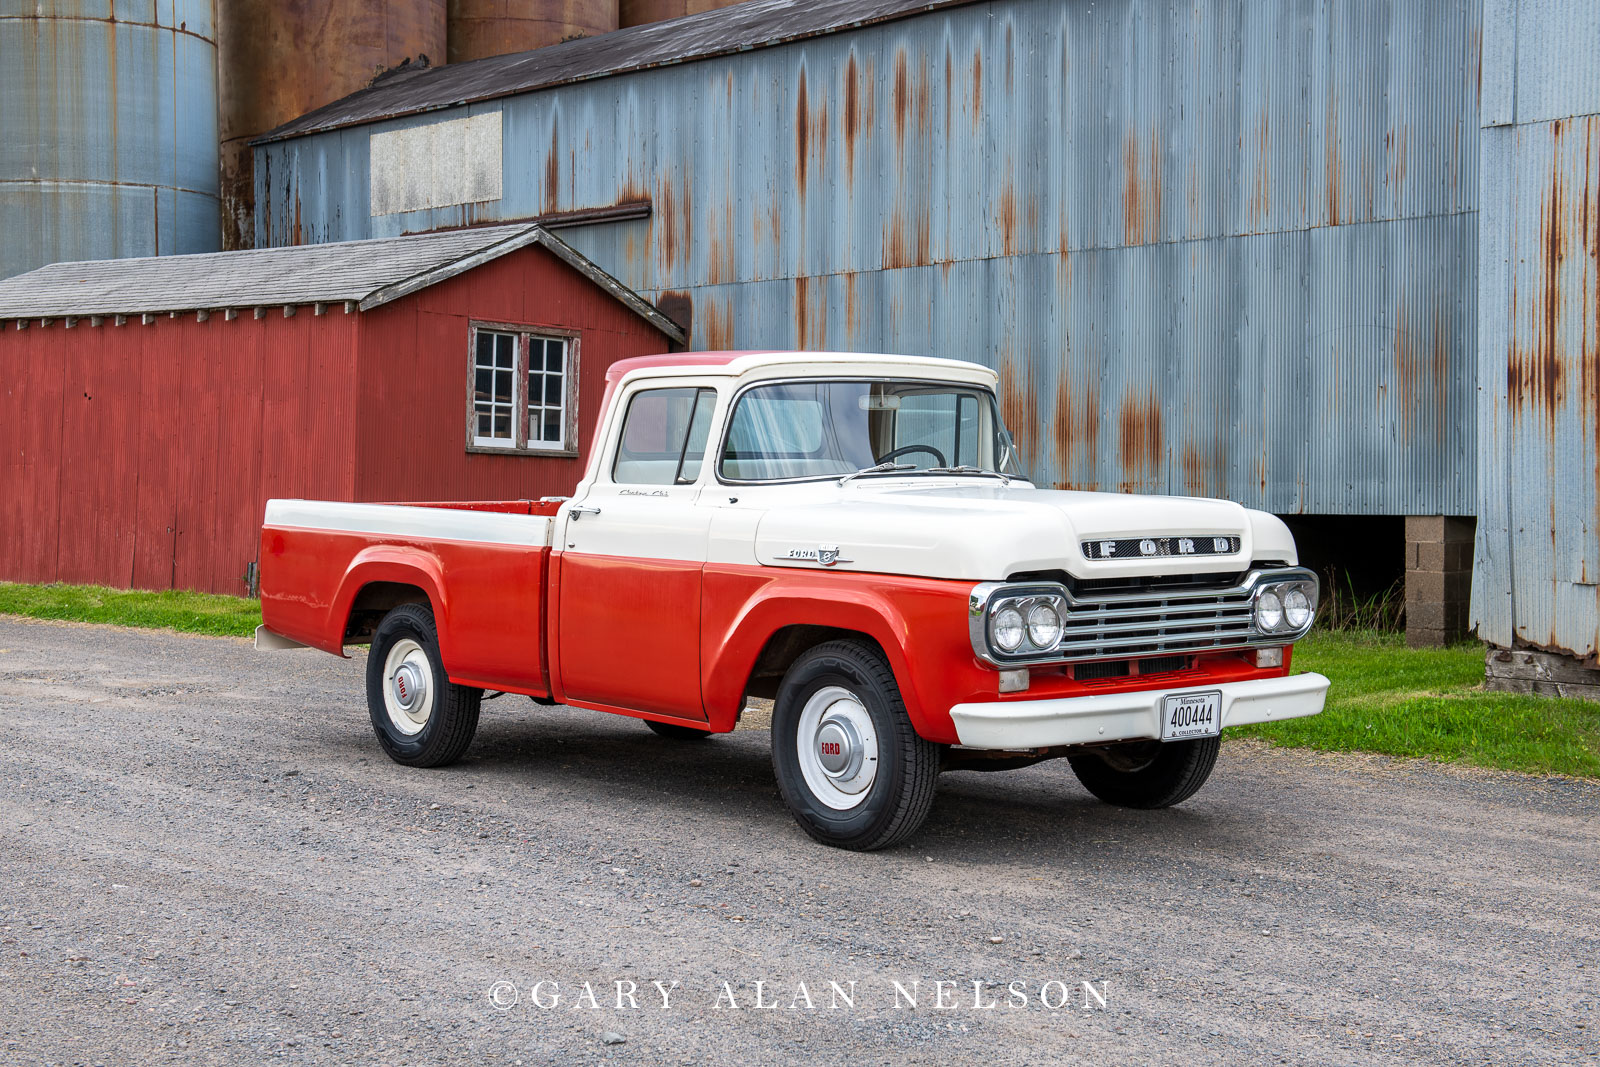 Ford, antique truck, pickup, pickup truck, vintage truck,1959 Ford F-100 longbed pickup., photo